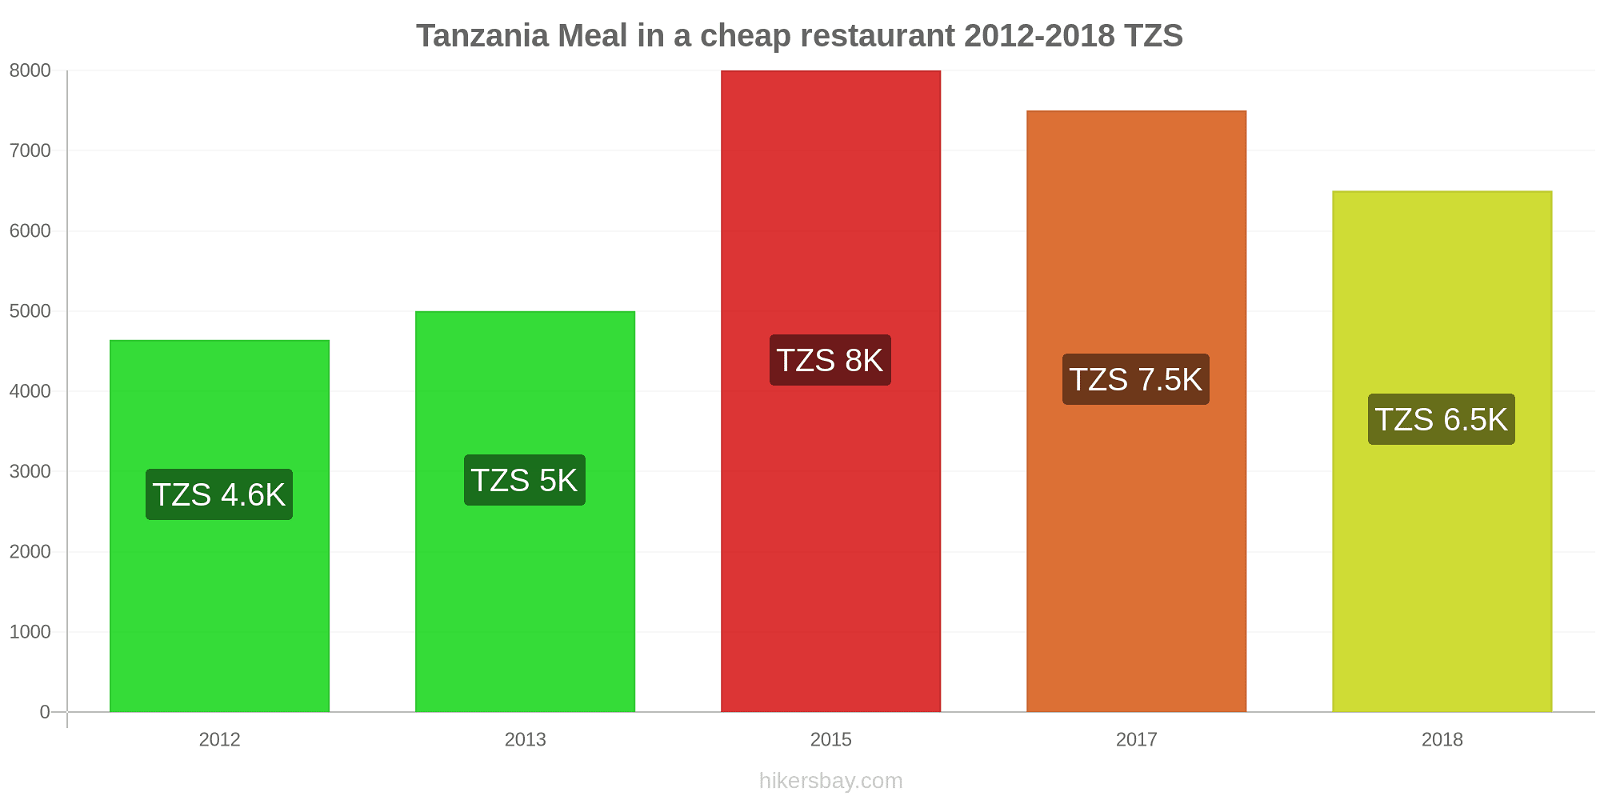 Tanzania price changes Meal in a cheap restaurant hikersbay.com